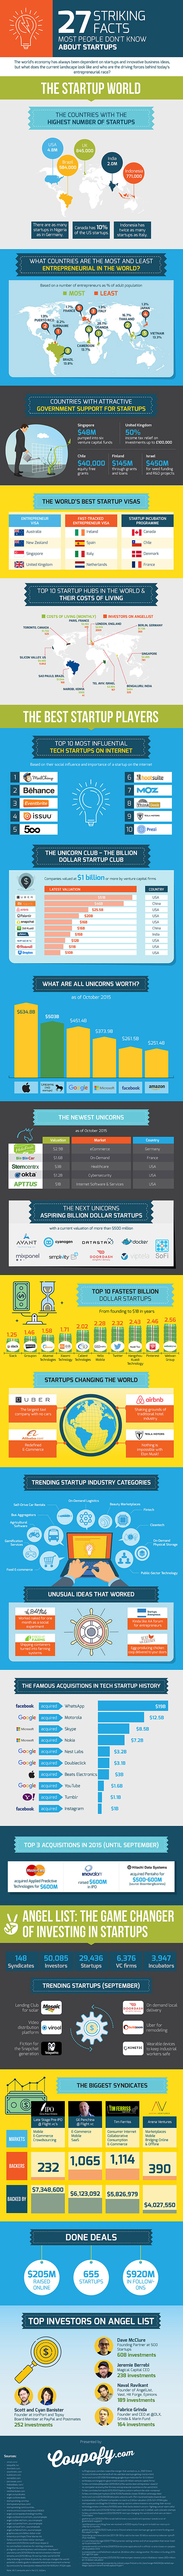 start-up-facts-infographic